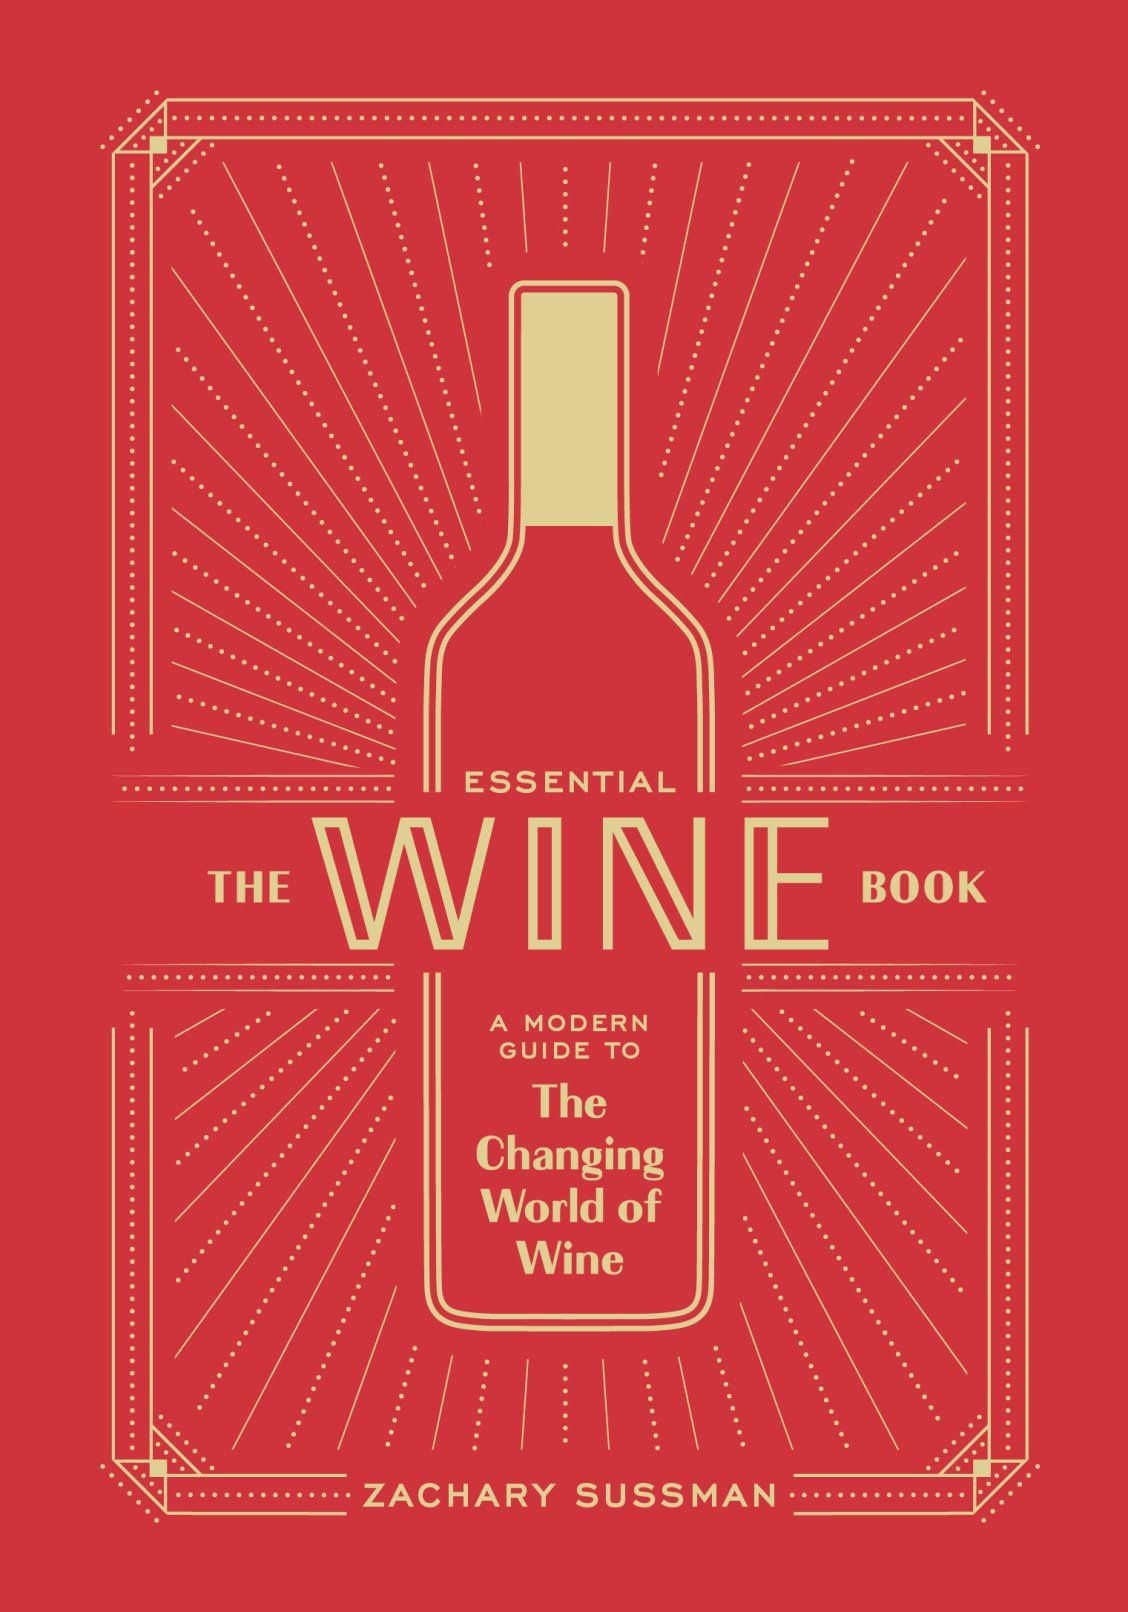 A Field Guide To The New World Of Wine Perfect For Wine Lovers Essentialwinebook Winelover Wineenthusiast In 2020 Wine Book Wine Culture Books